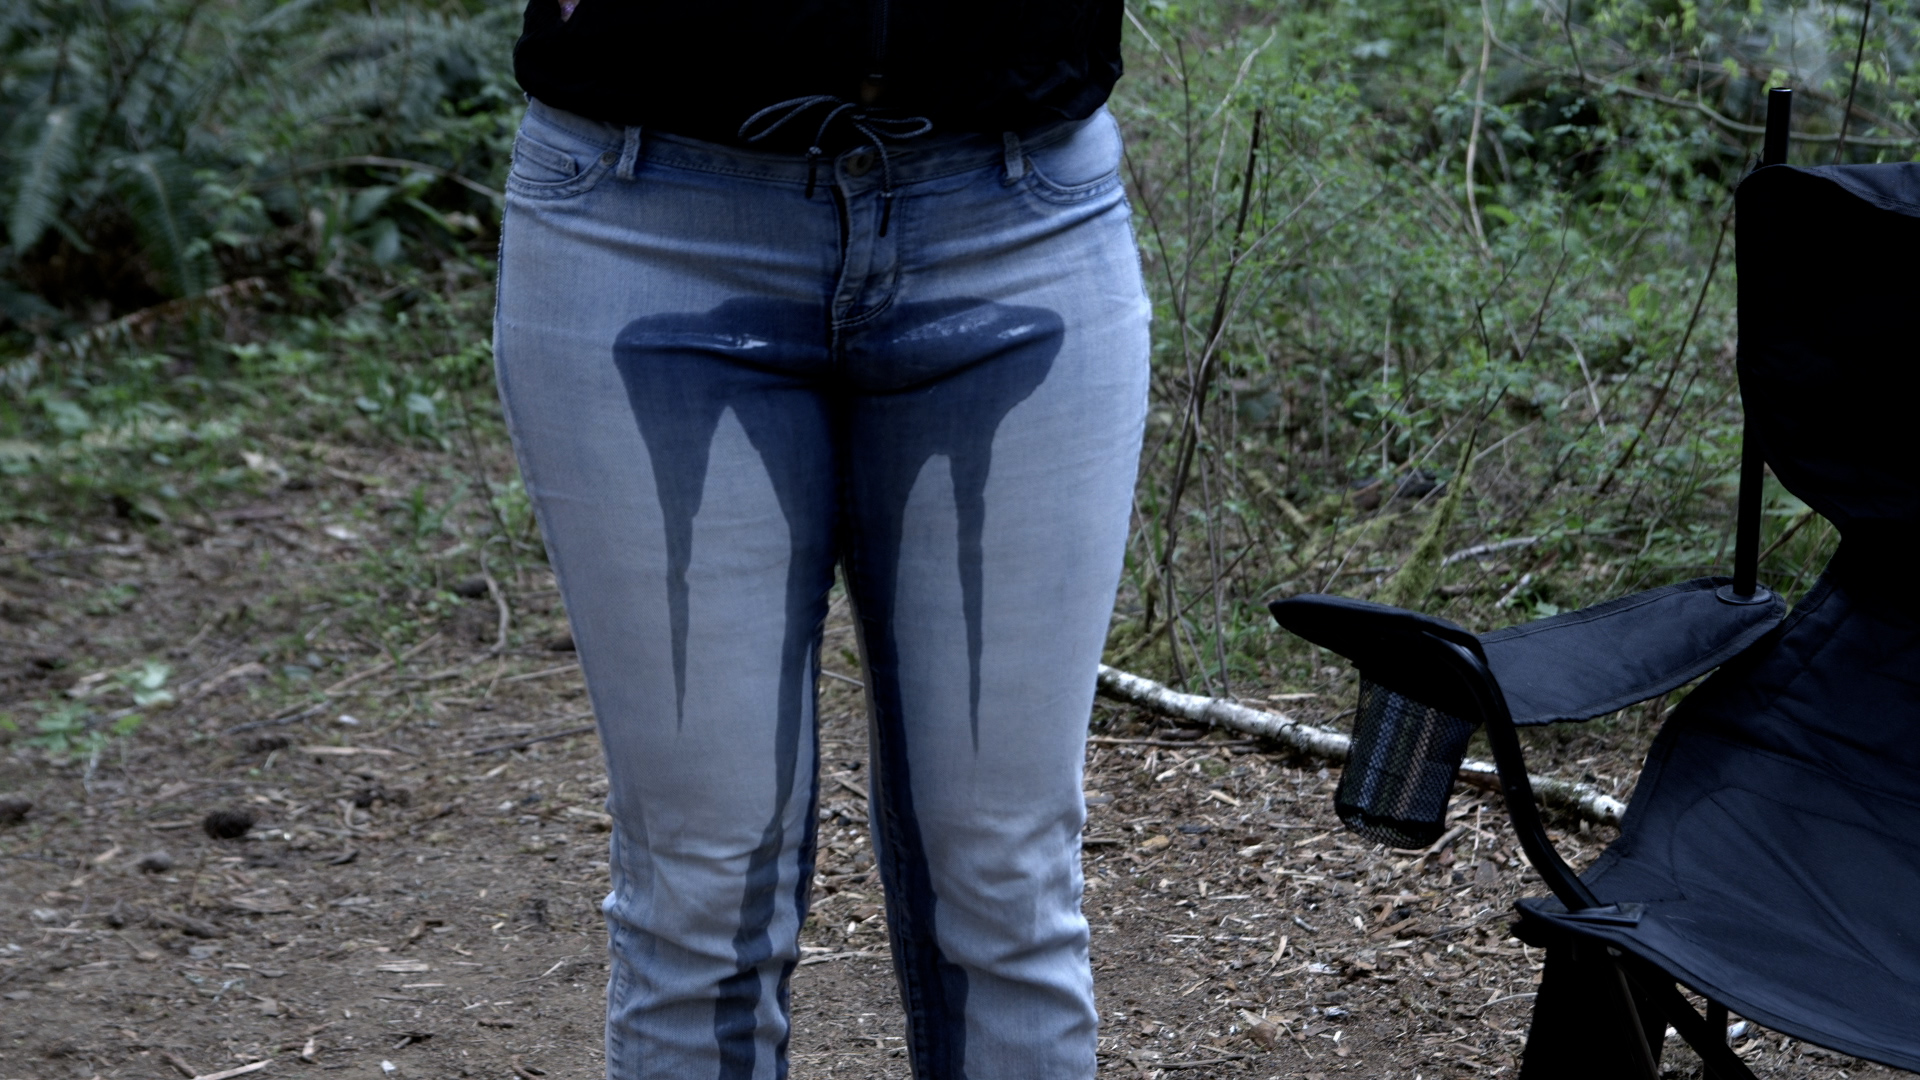 Close-up shot of Alisha peeing in her jeans while standing next to the campfire.